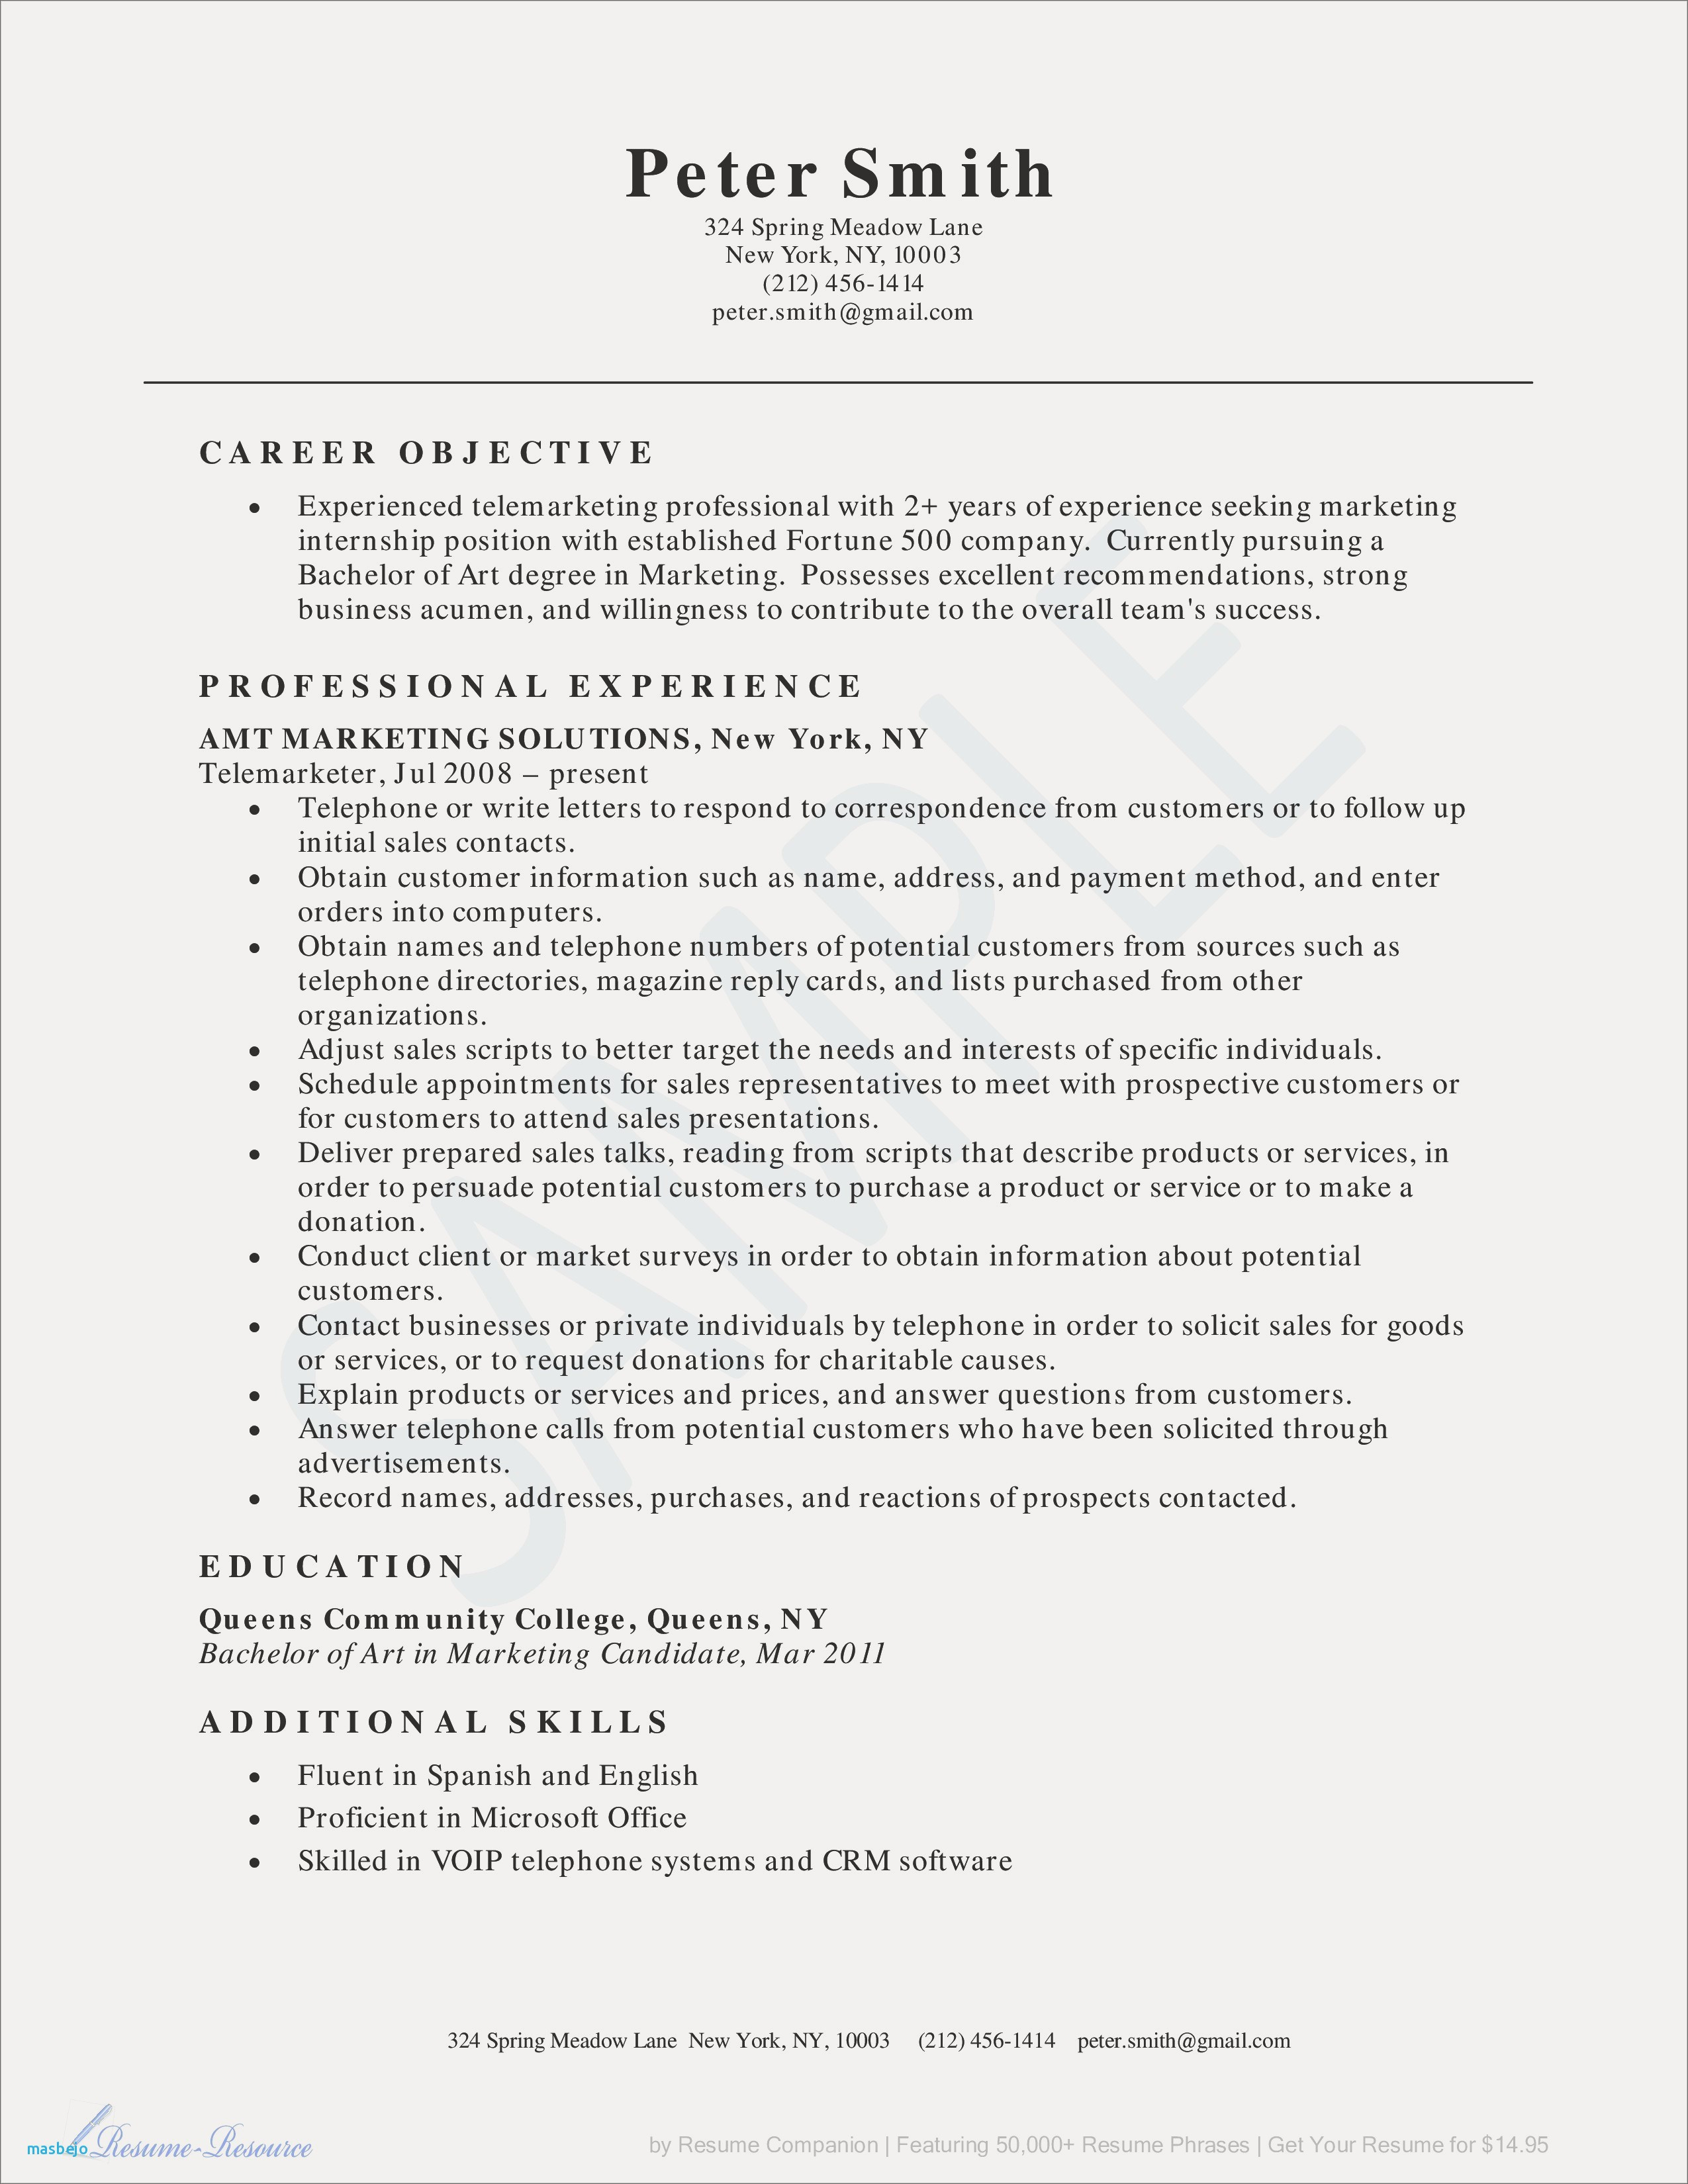 Office Resume Templates - Microsoft Fice Sample Resume New Sales Resume Awesome How Can I Do